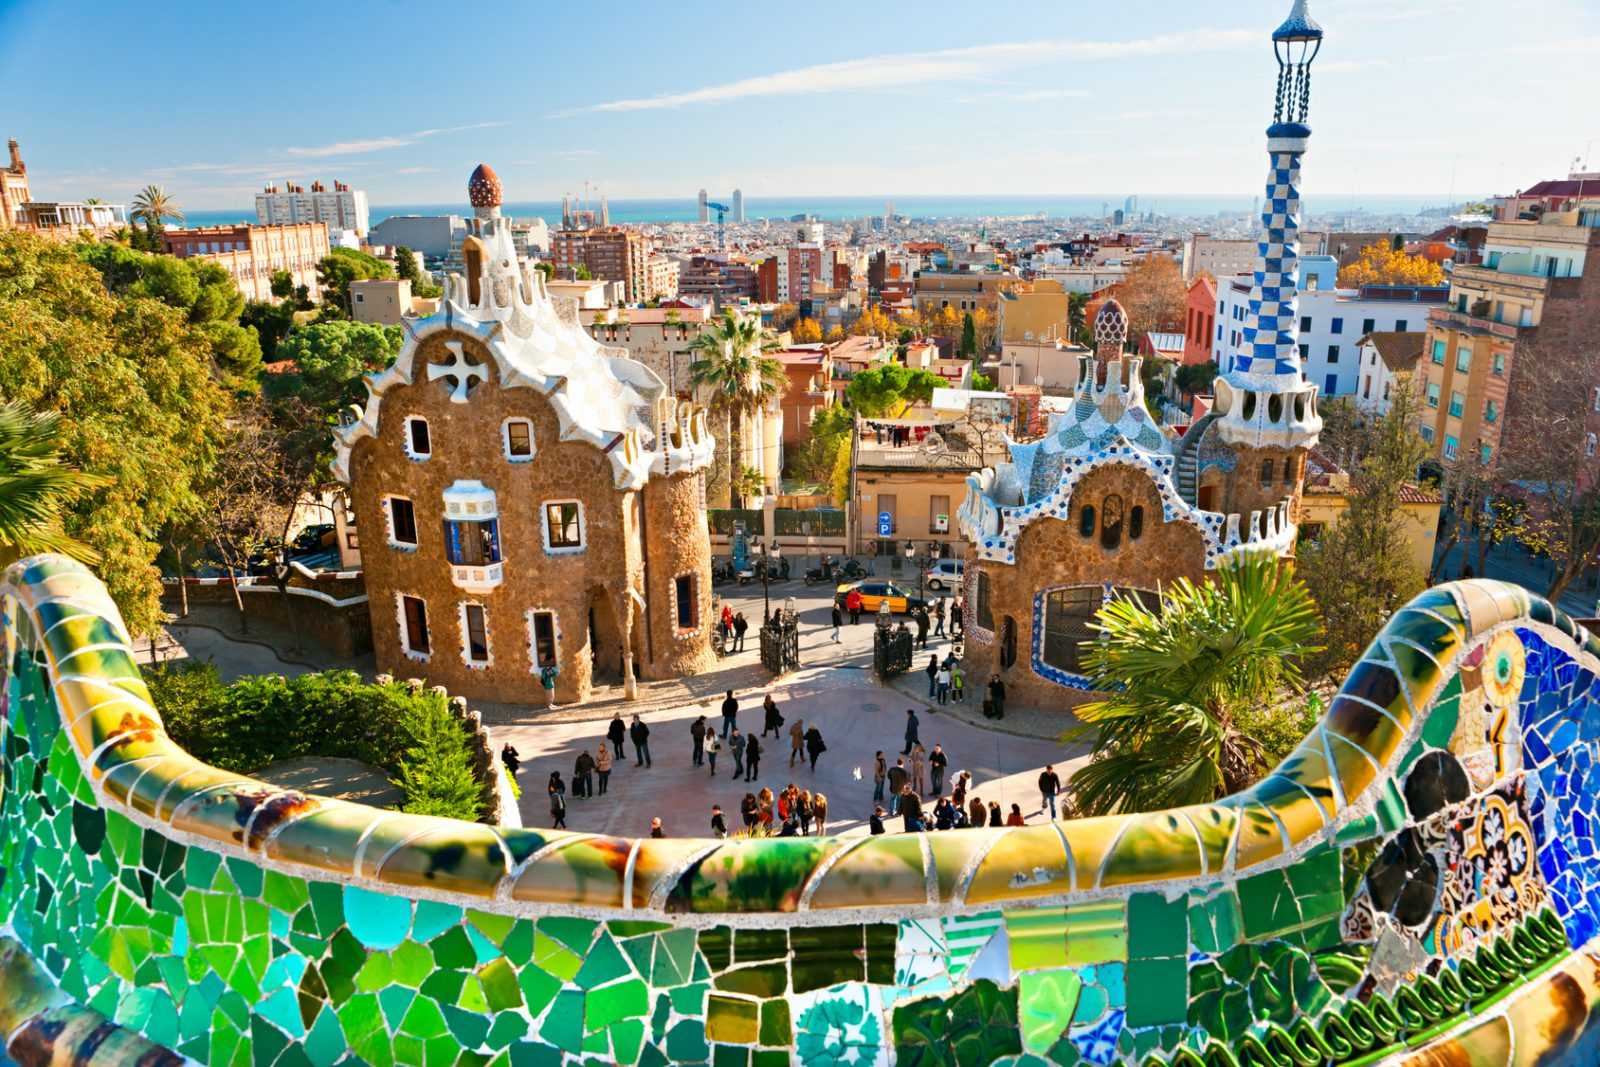 Park Guell in Barcelona, Spain. Photo by urbantimes.co